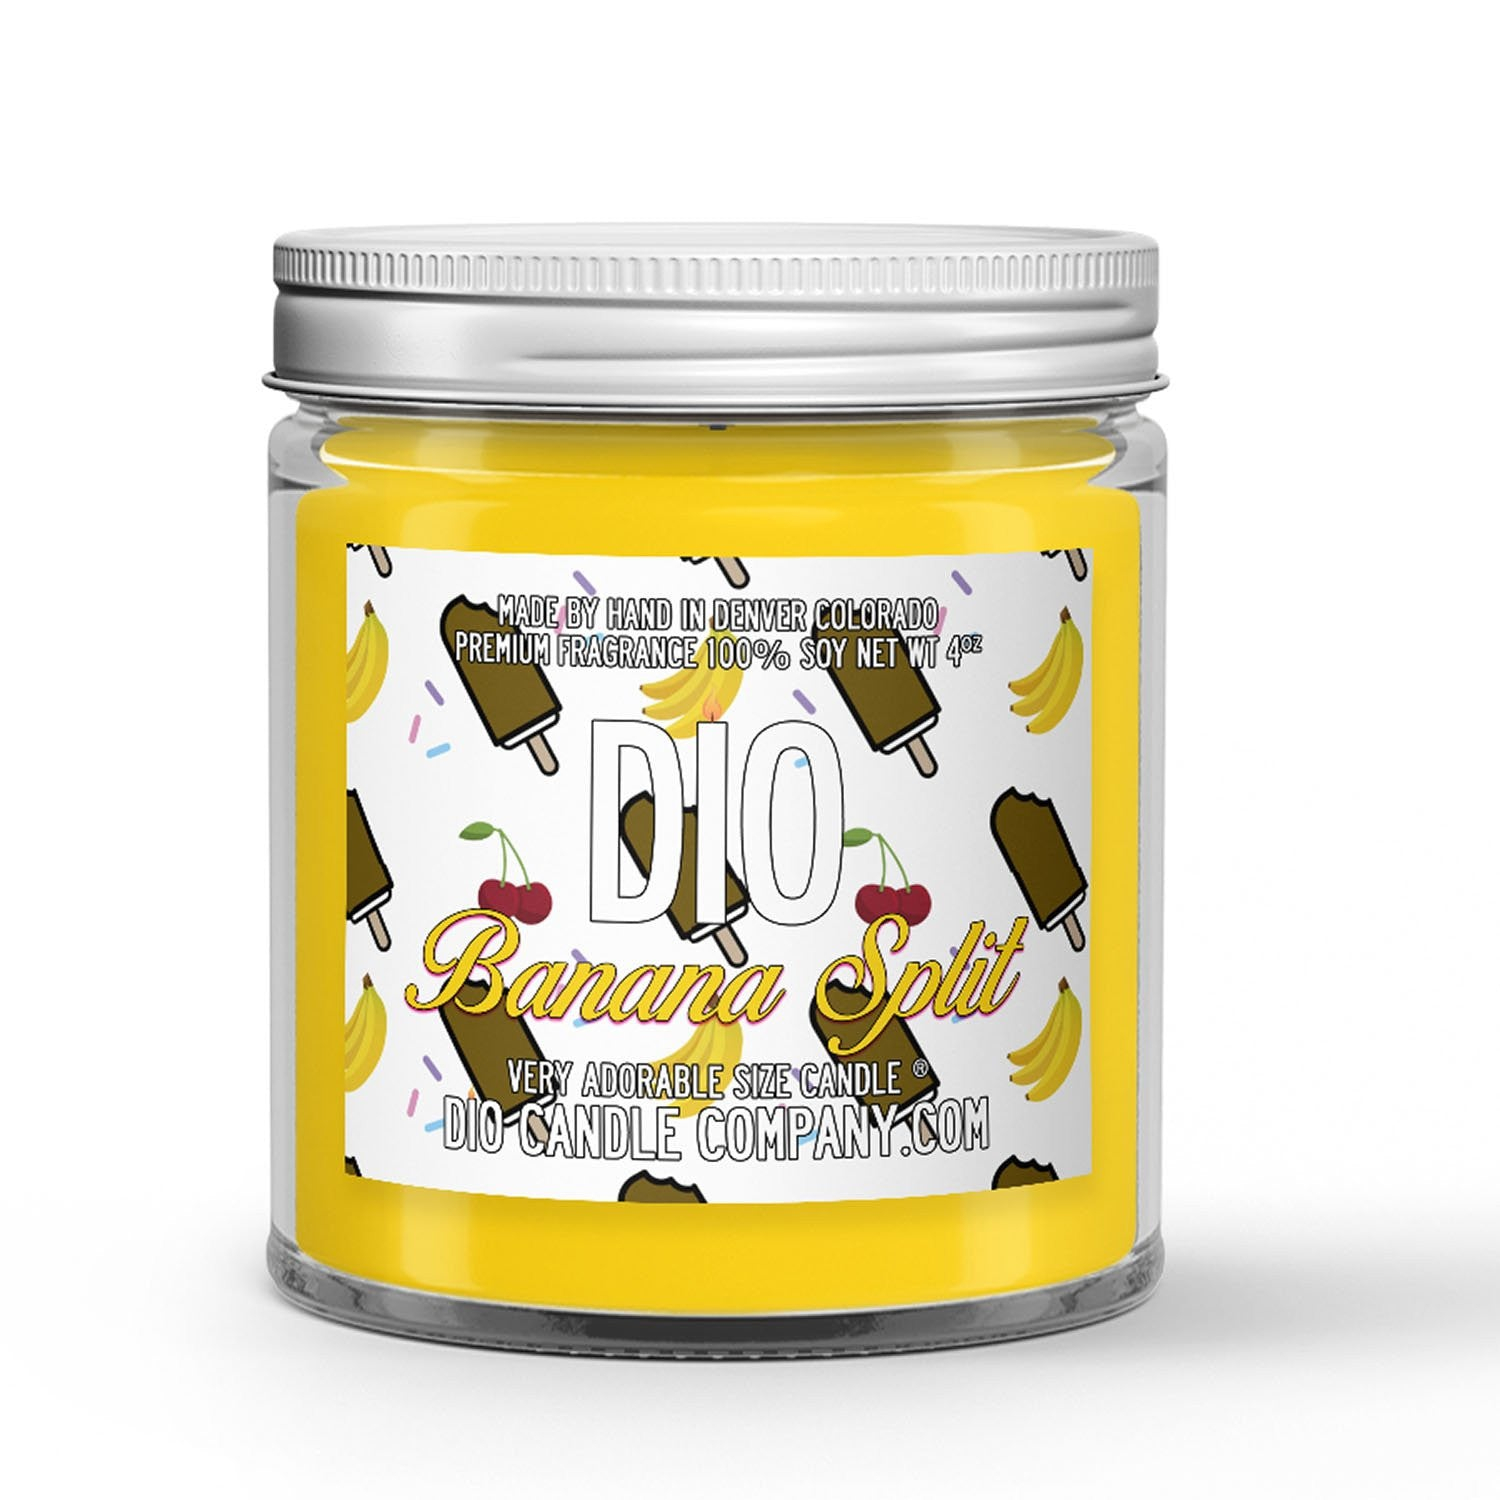 Banana Split Ice Cream Candle - Chocolate Banana Ice Cream - Cherry - Hot Fudge - 4oz Very Adorable Size Candle® - Dio Candle Company